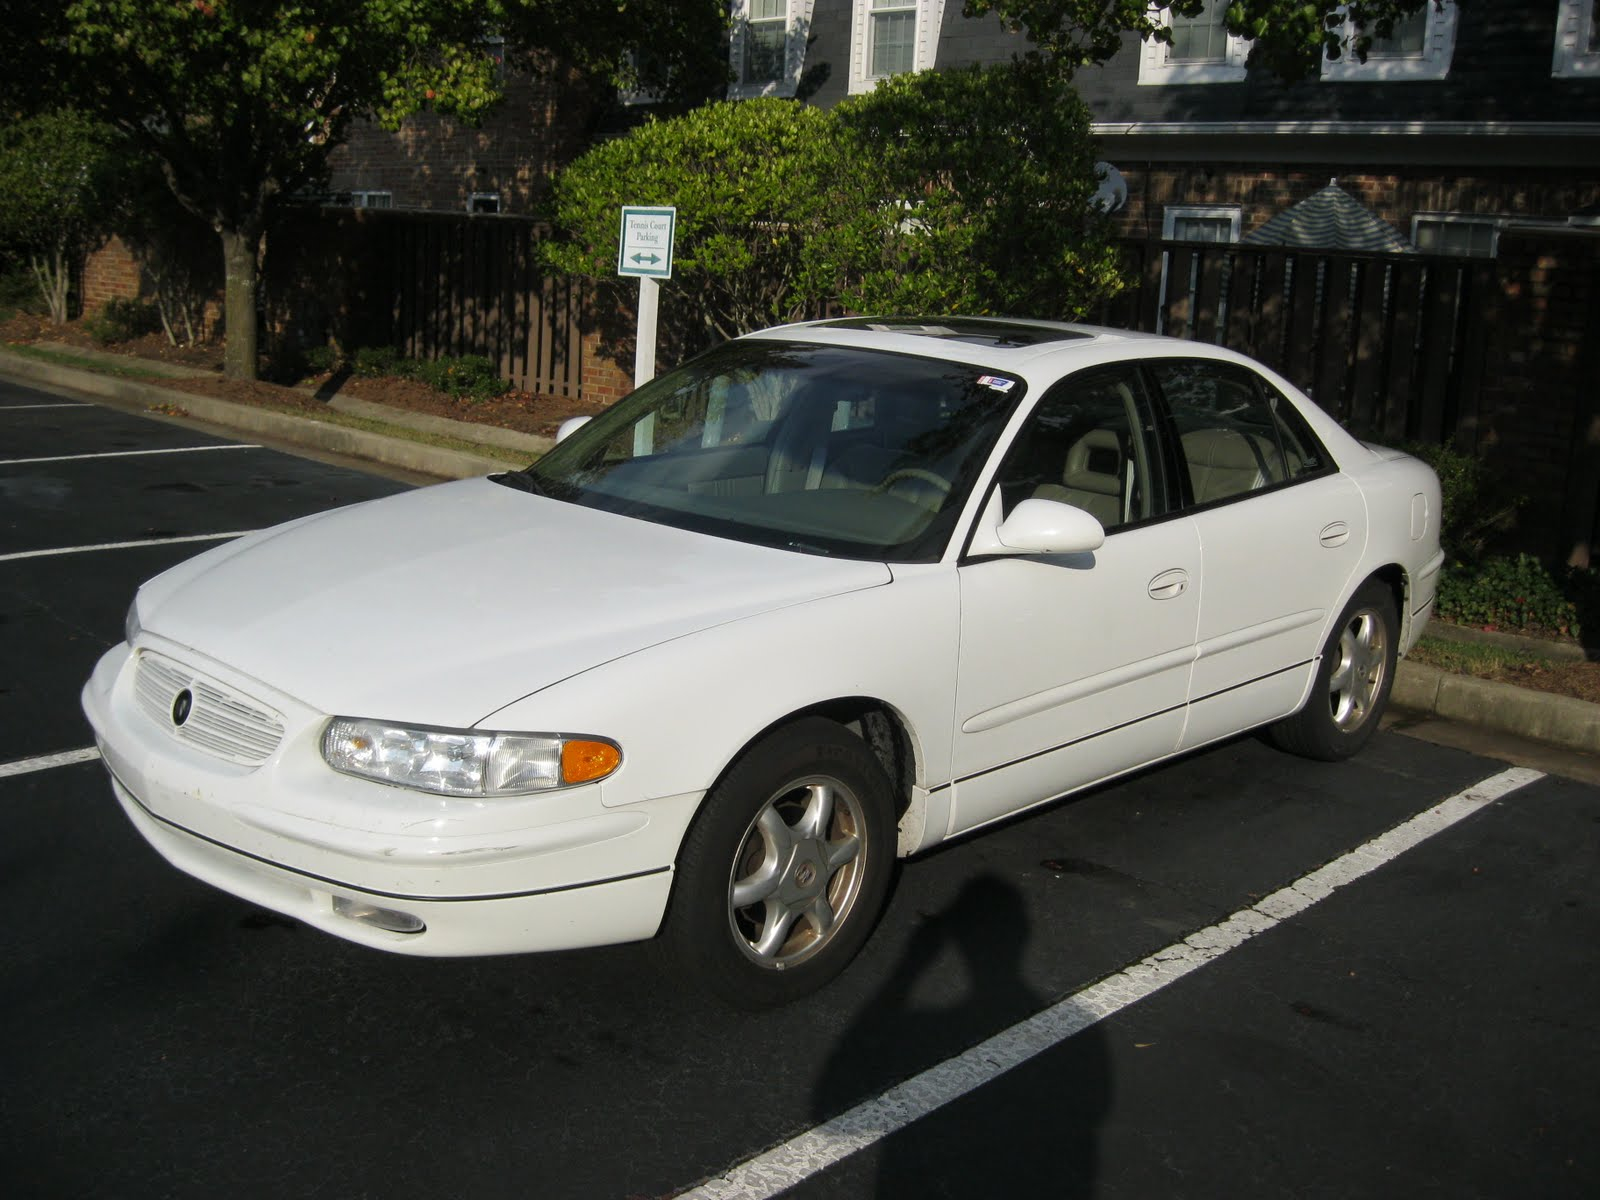 2000 Buick Regal Information And Photos MOMENTcar